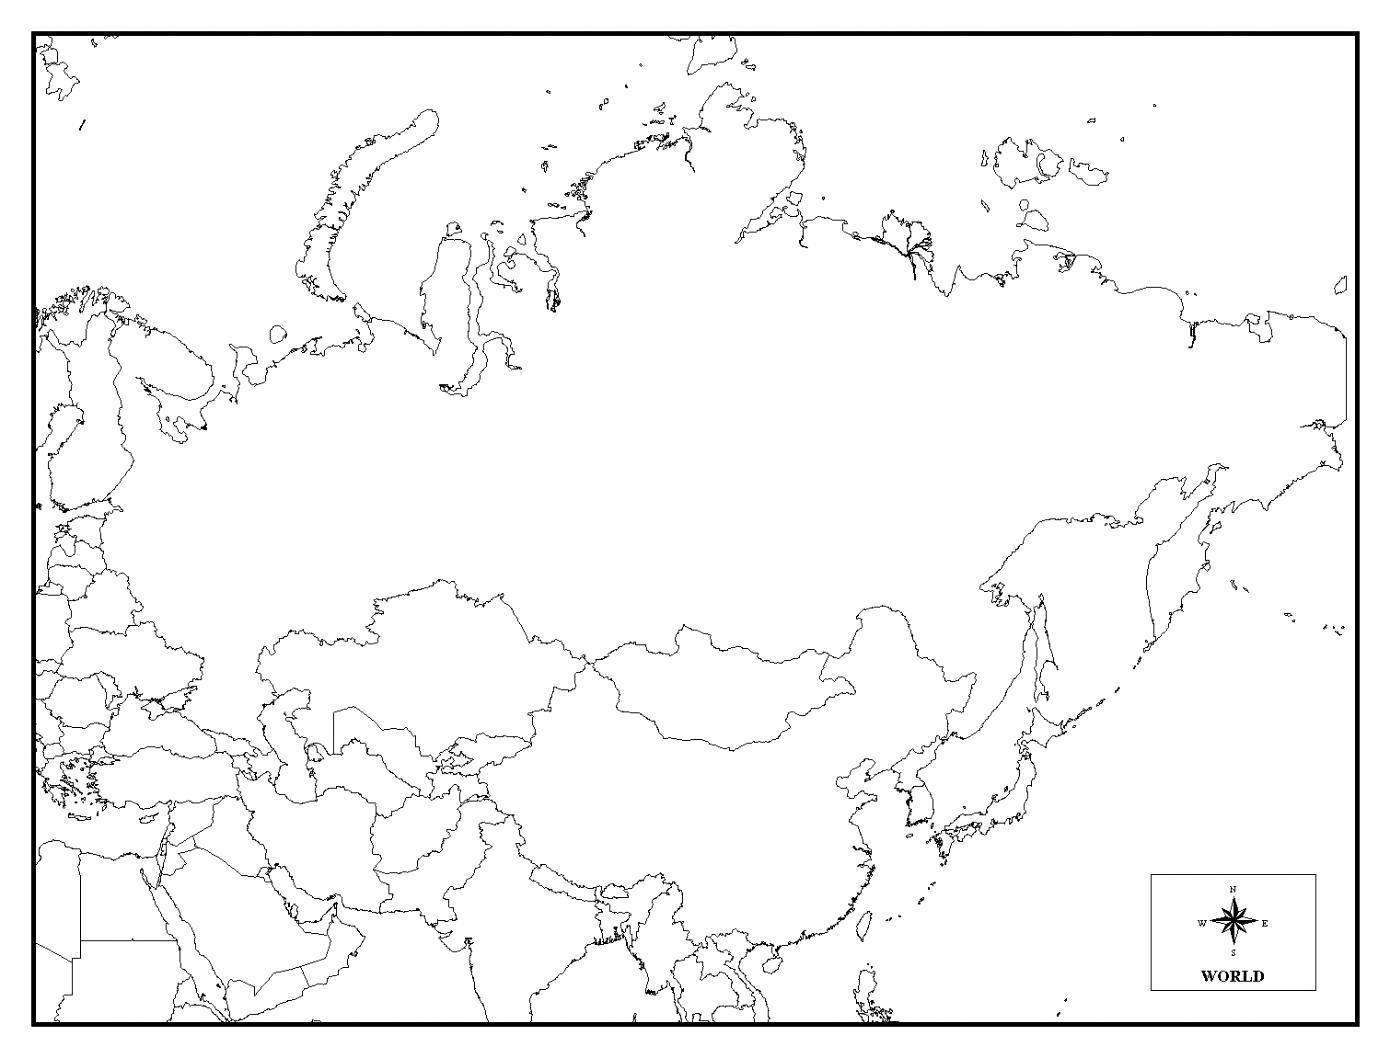 Projection Map Blank Printable World Outline Maps Royalty